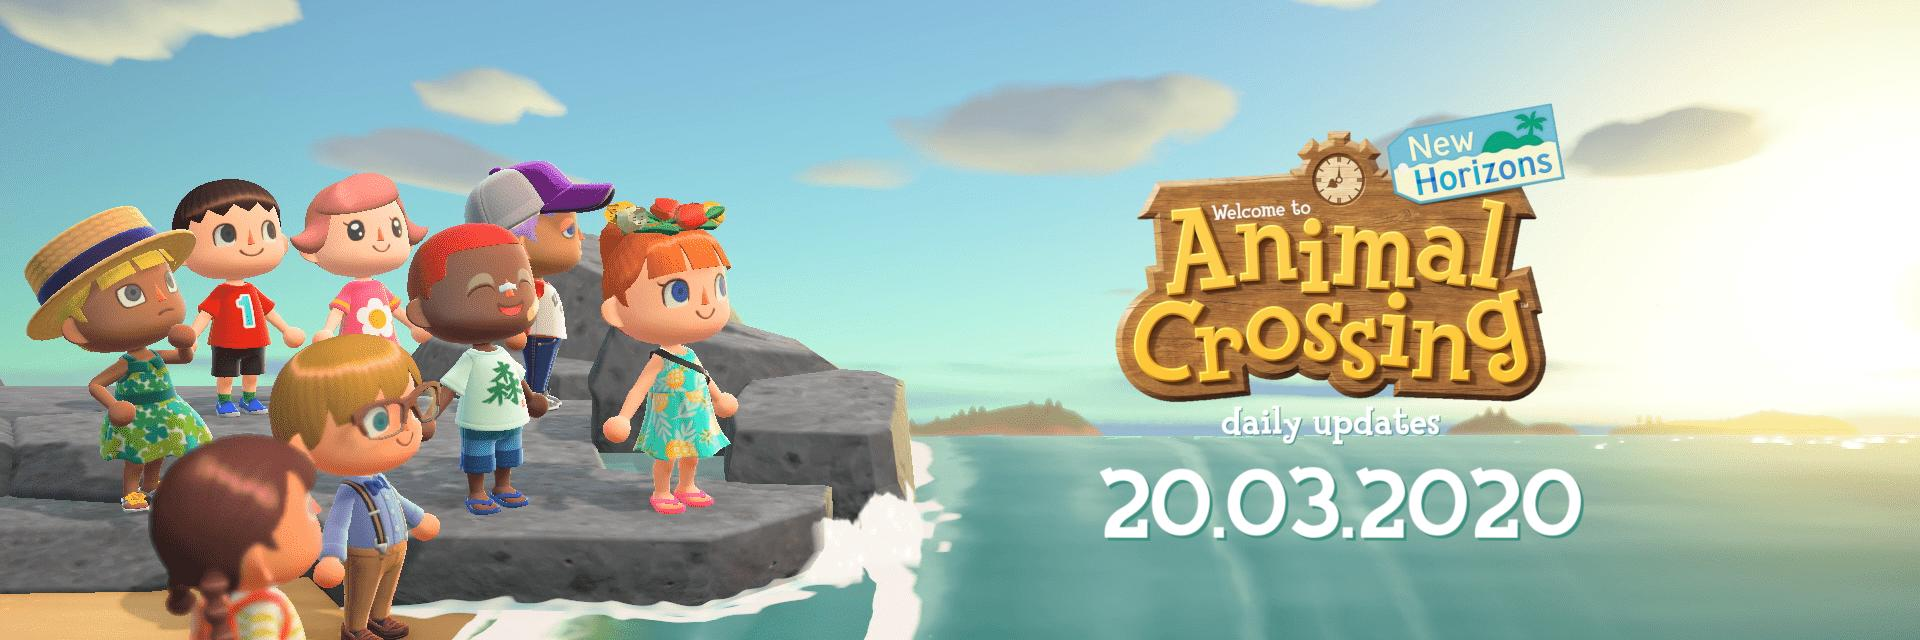 31/07/2019 - update 275 Animal Crossing New Horizons will be released for Nintendo Switch on March 20, 2020. -233 d… twitter.com/i/web/status/1…